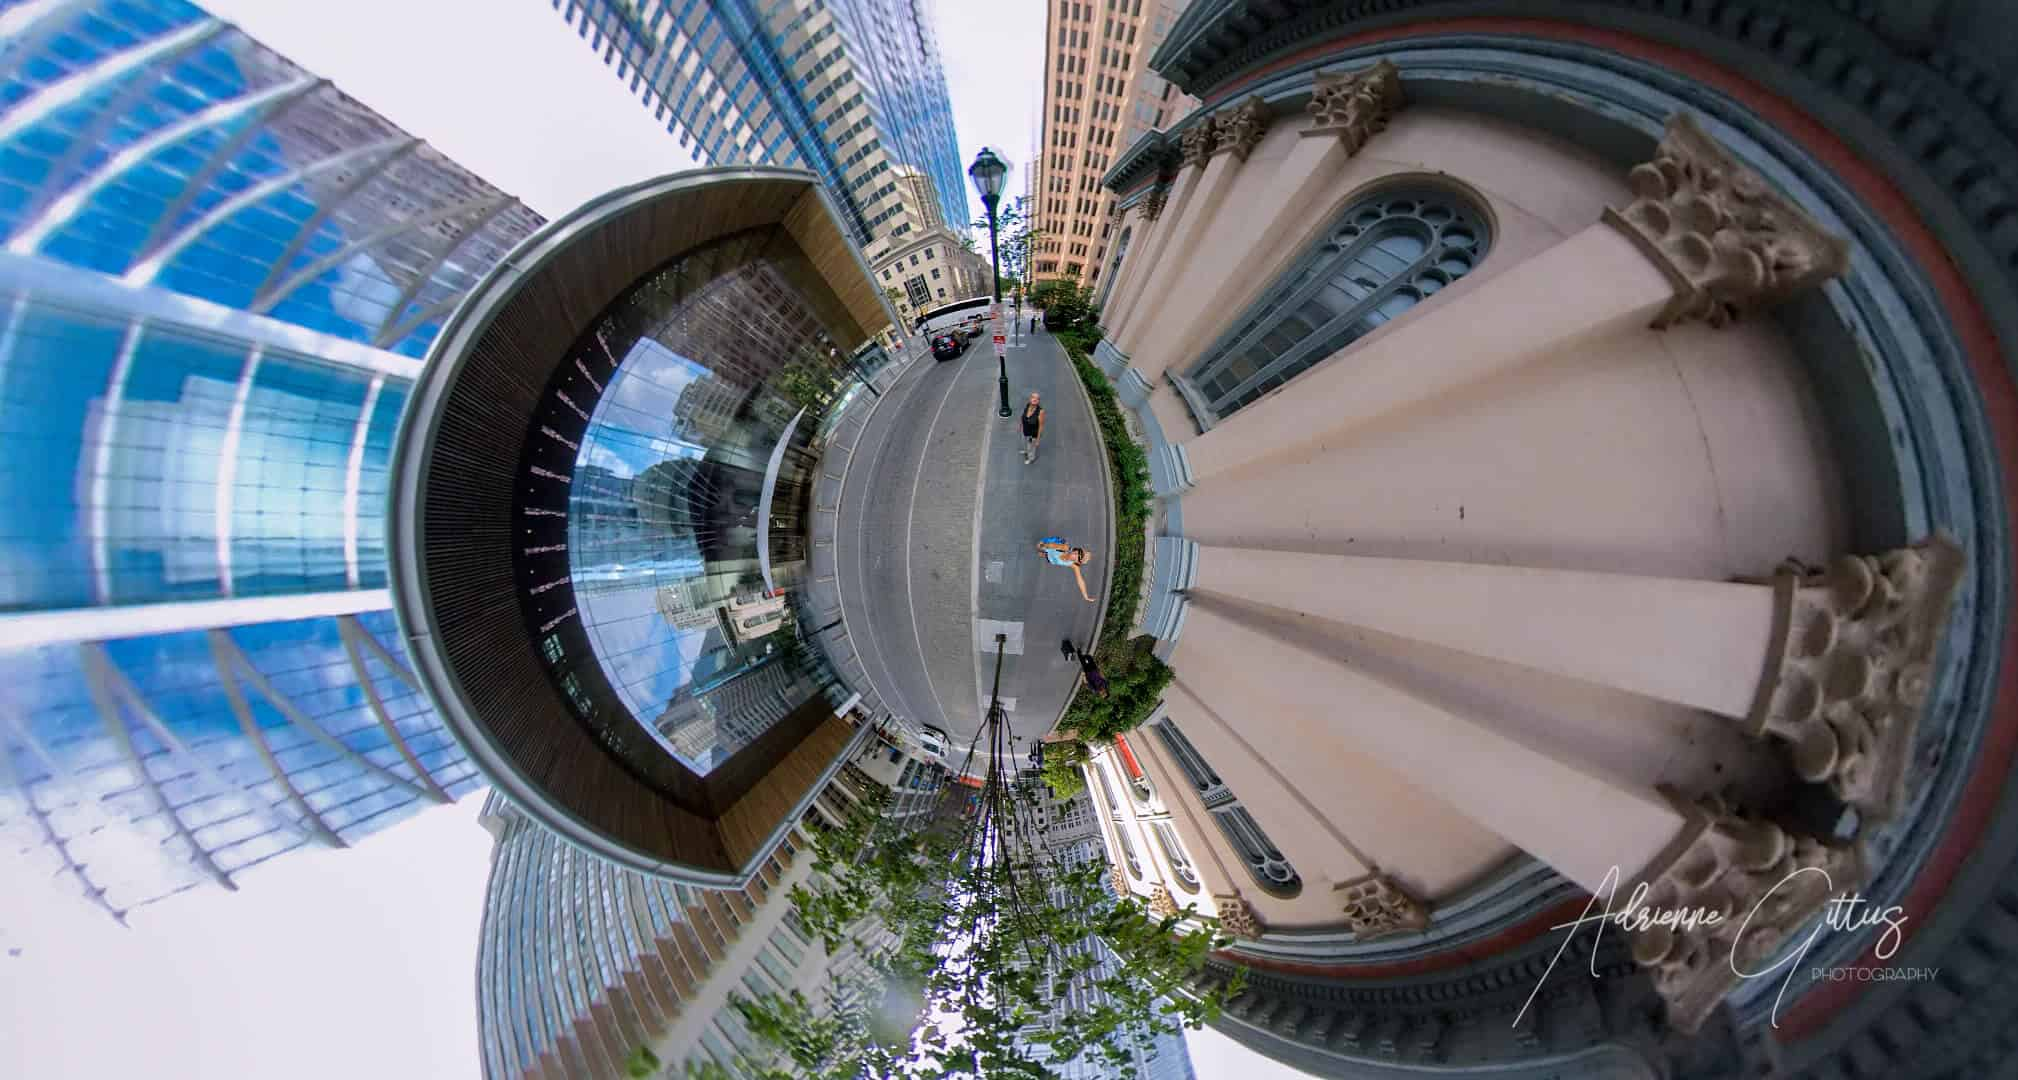 360 tiny planet of philadelphia city streets